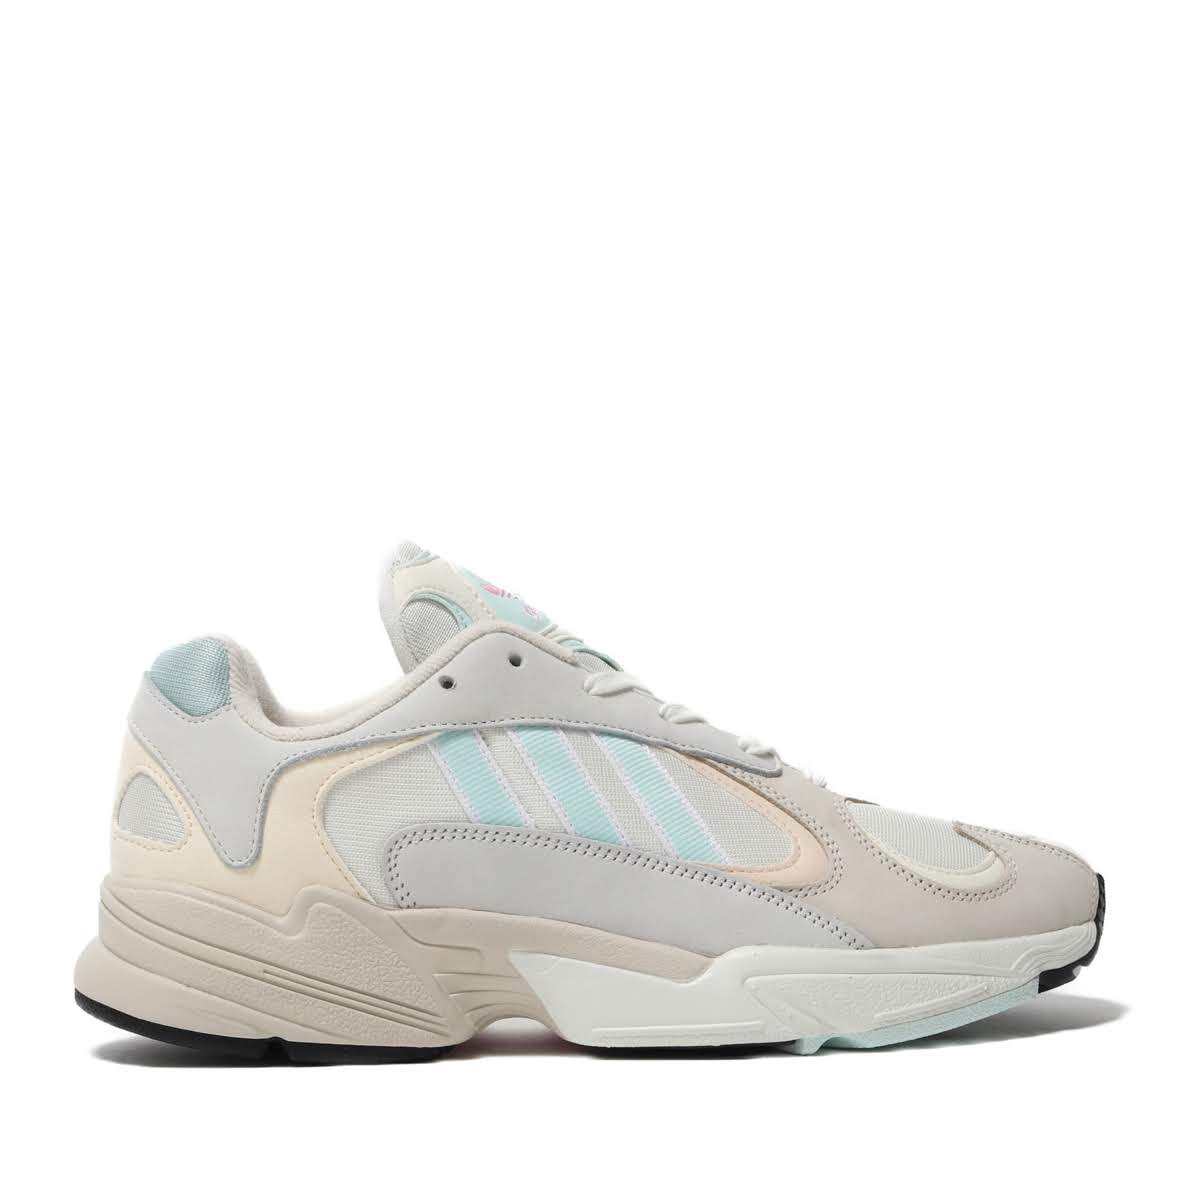 02d57e30555 Categories. « All Categories · Shoes · Men's Shoes · Sneakers · adidas  Originals YUNG-1 (OFF WHITE/ICE MINT/ECRU ...